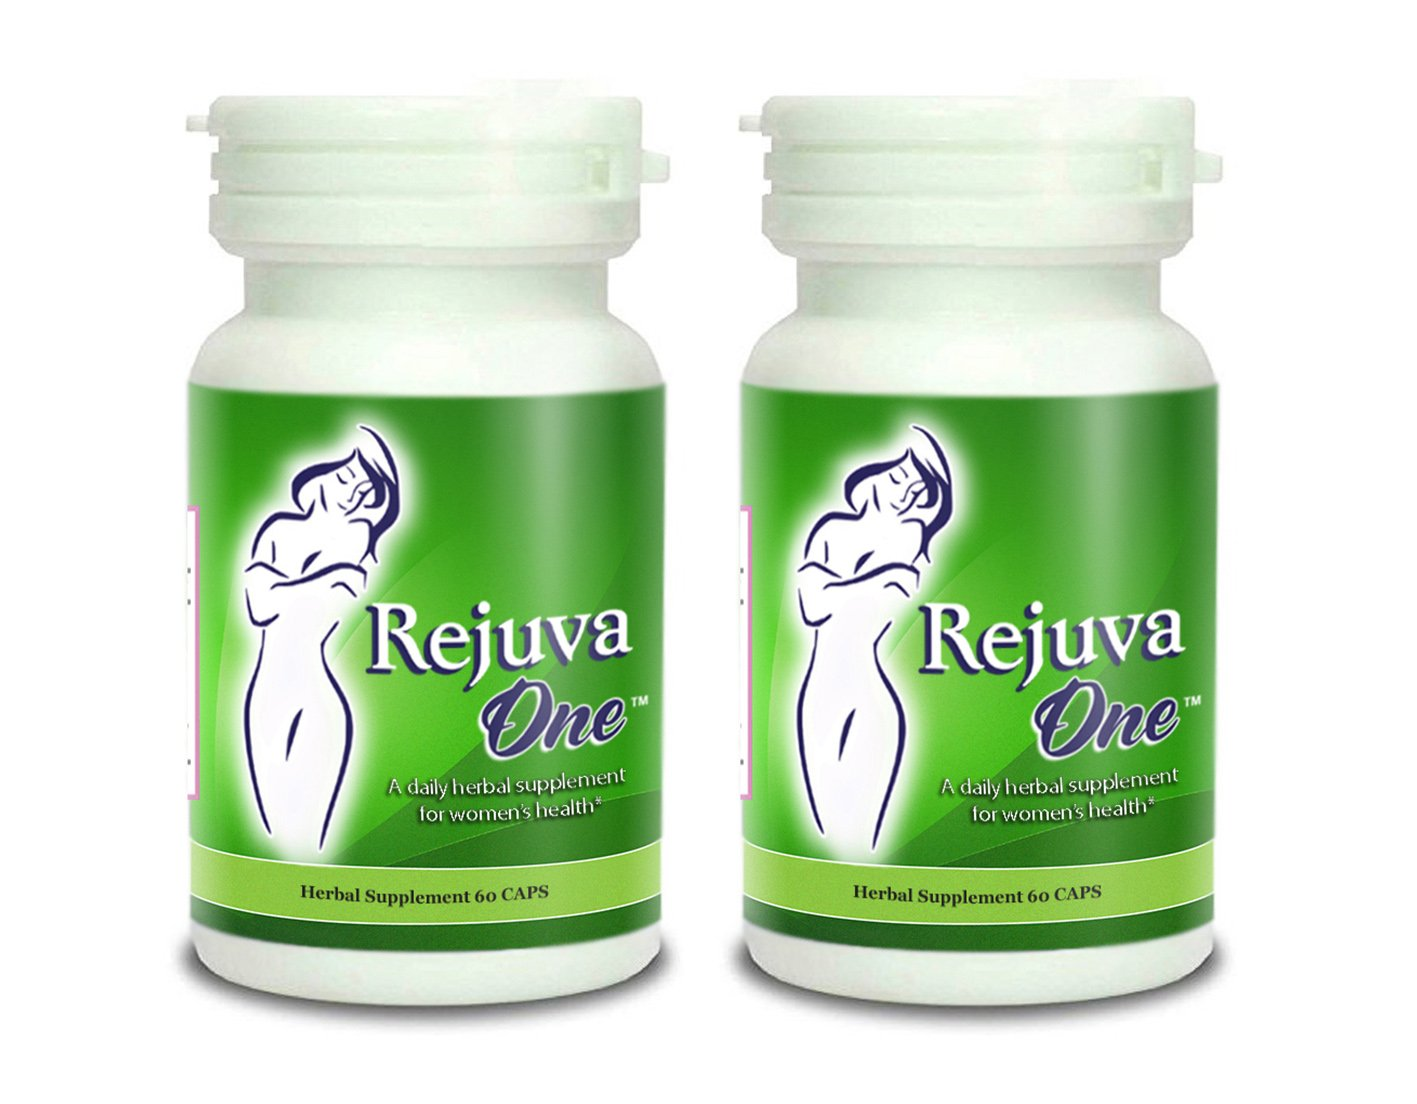 RejuvaOne Vaginal Tightening Pills (60-Capsules) Women's Herbal Supplement | Pelvic Floor, Postpartum Support | Balance Hormones (2 Bottles)